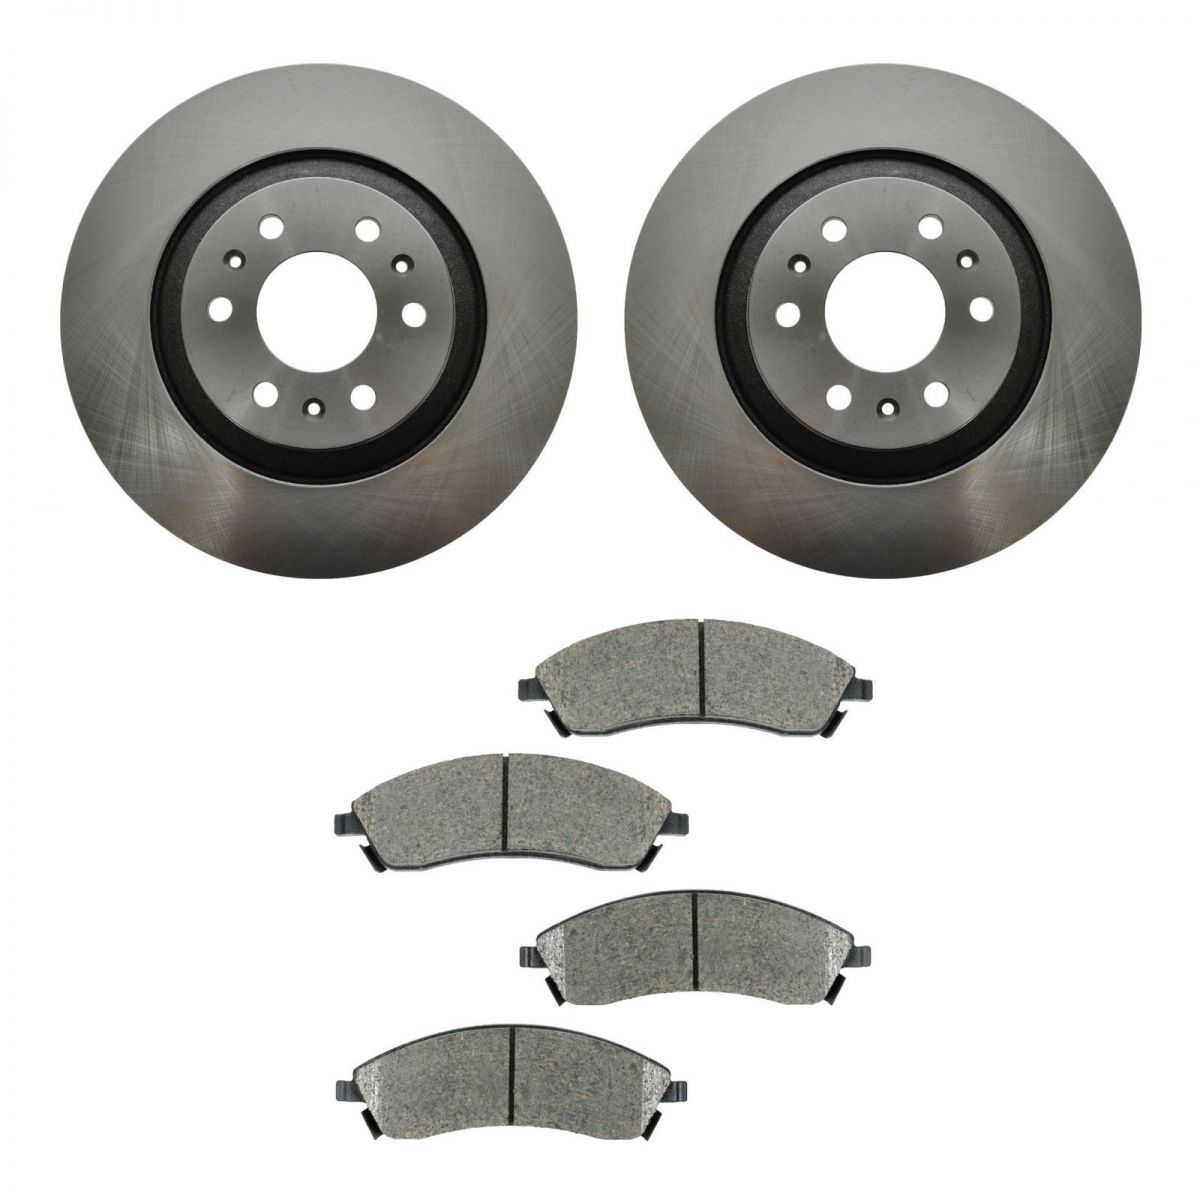 front ceramic brake pads 2 discs rotors kit set new for 04. Black Bedroom Furniture Sets. Home Design Ideas